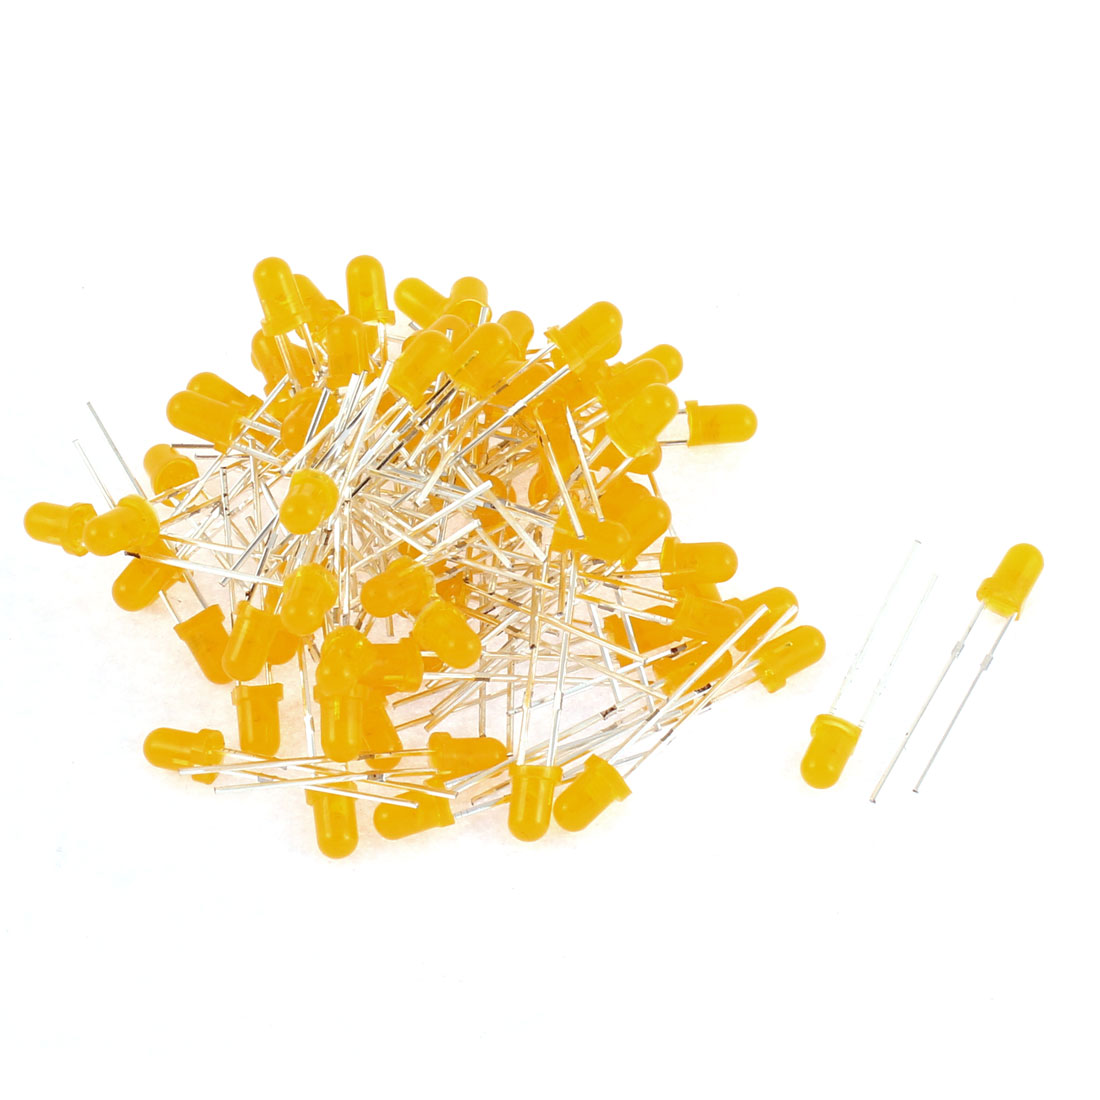 75pcs 3mm Head Yellow Diffused Color Lens LED Emitting Diode Bulb Beads